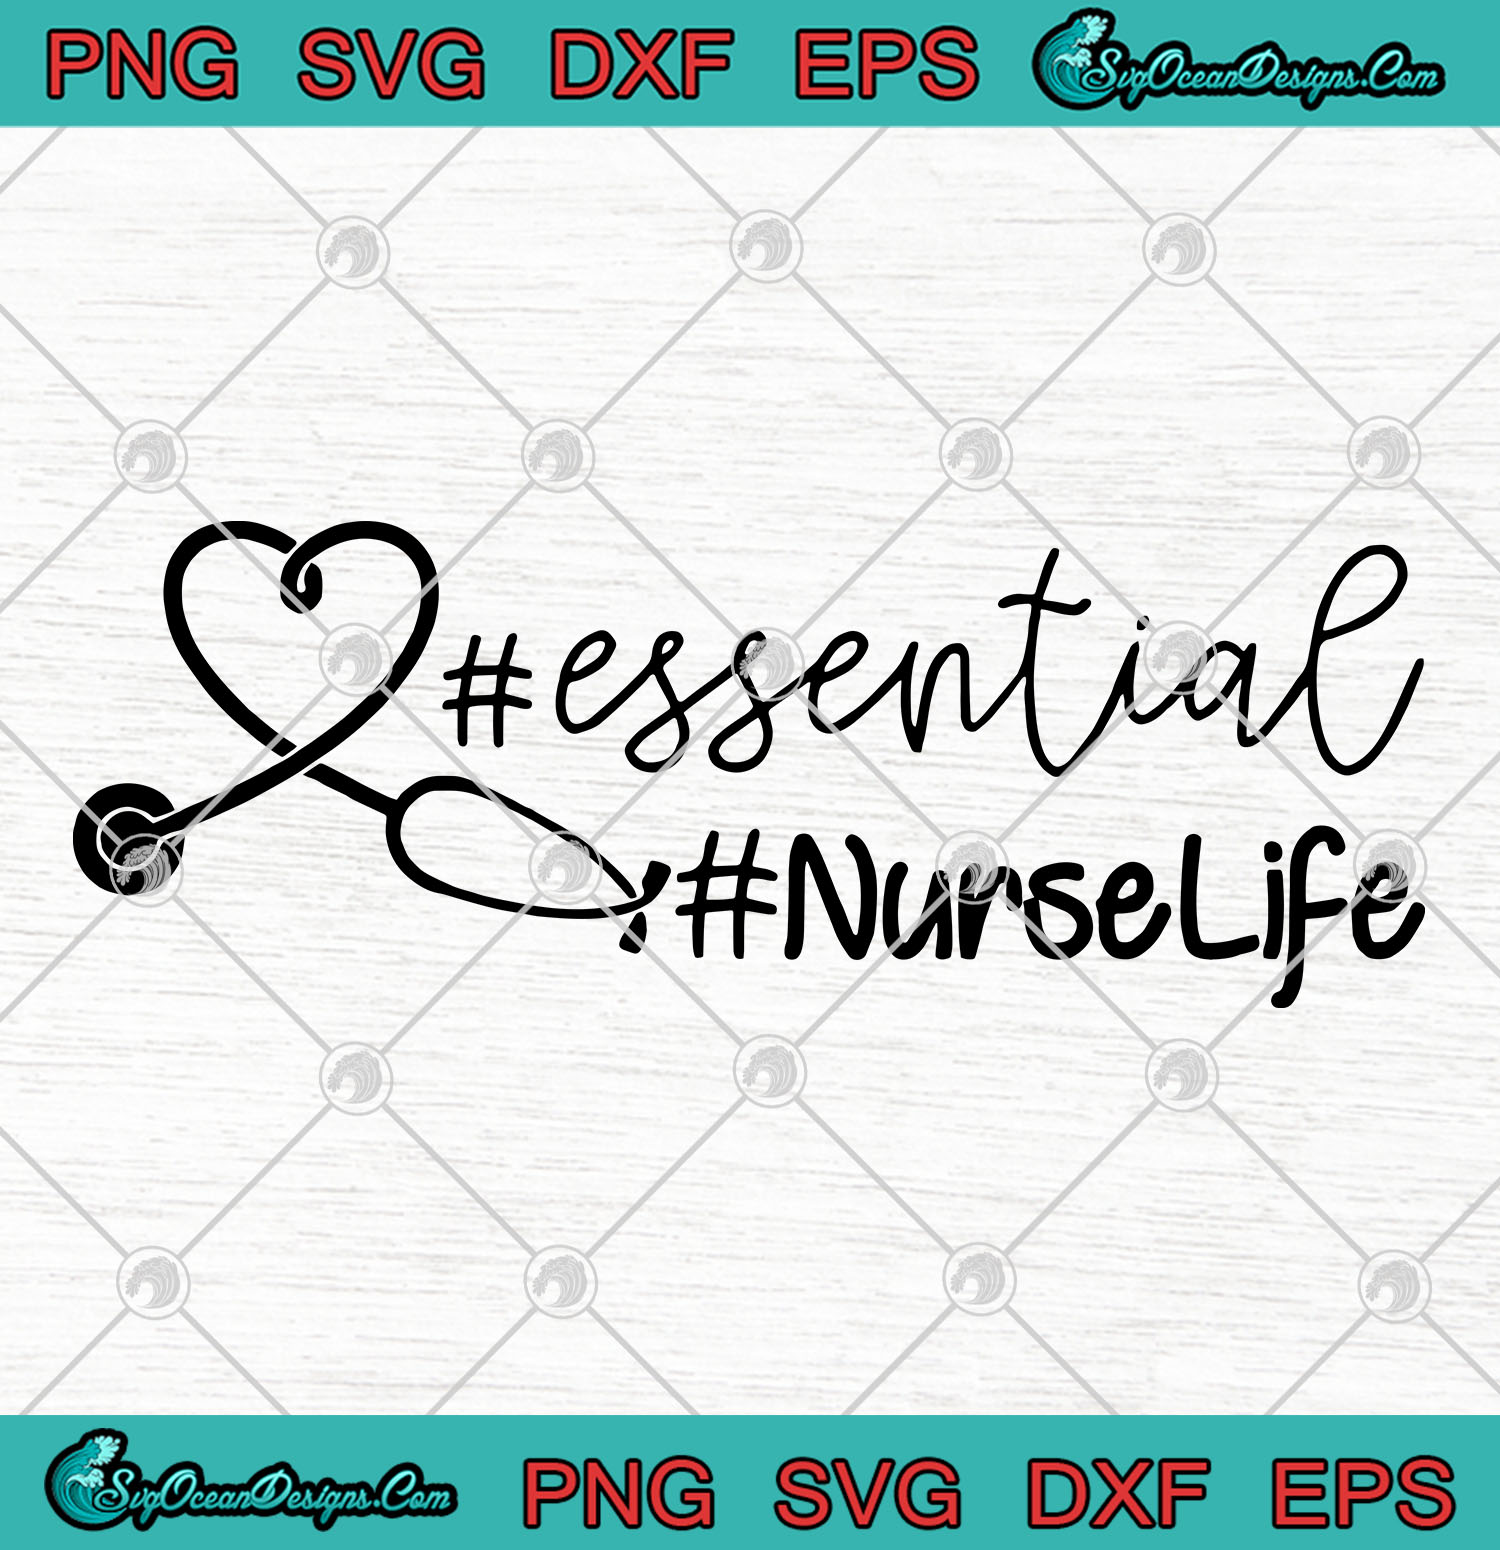 Love Essential Nurse Life Svg Png Eps Dxf Strong Nurse Svg Cutting File Cricut Silhouette Art Designs Digital Download